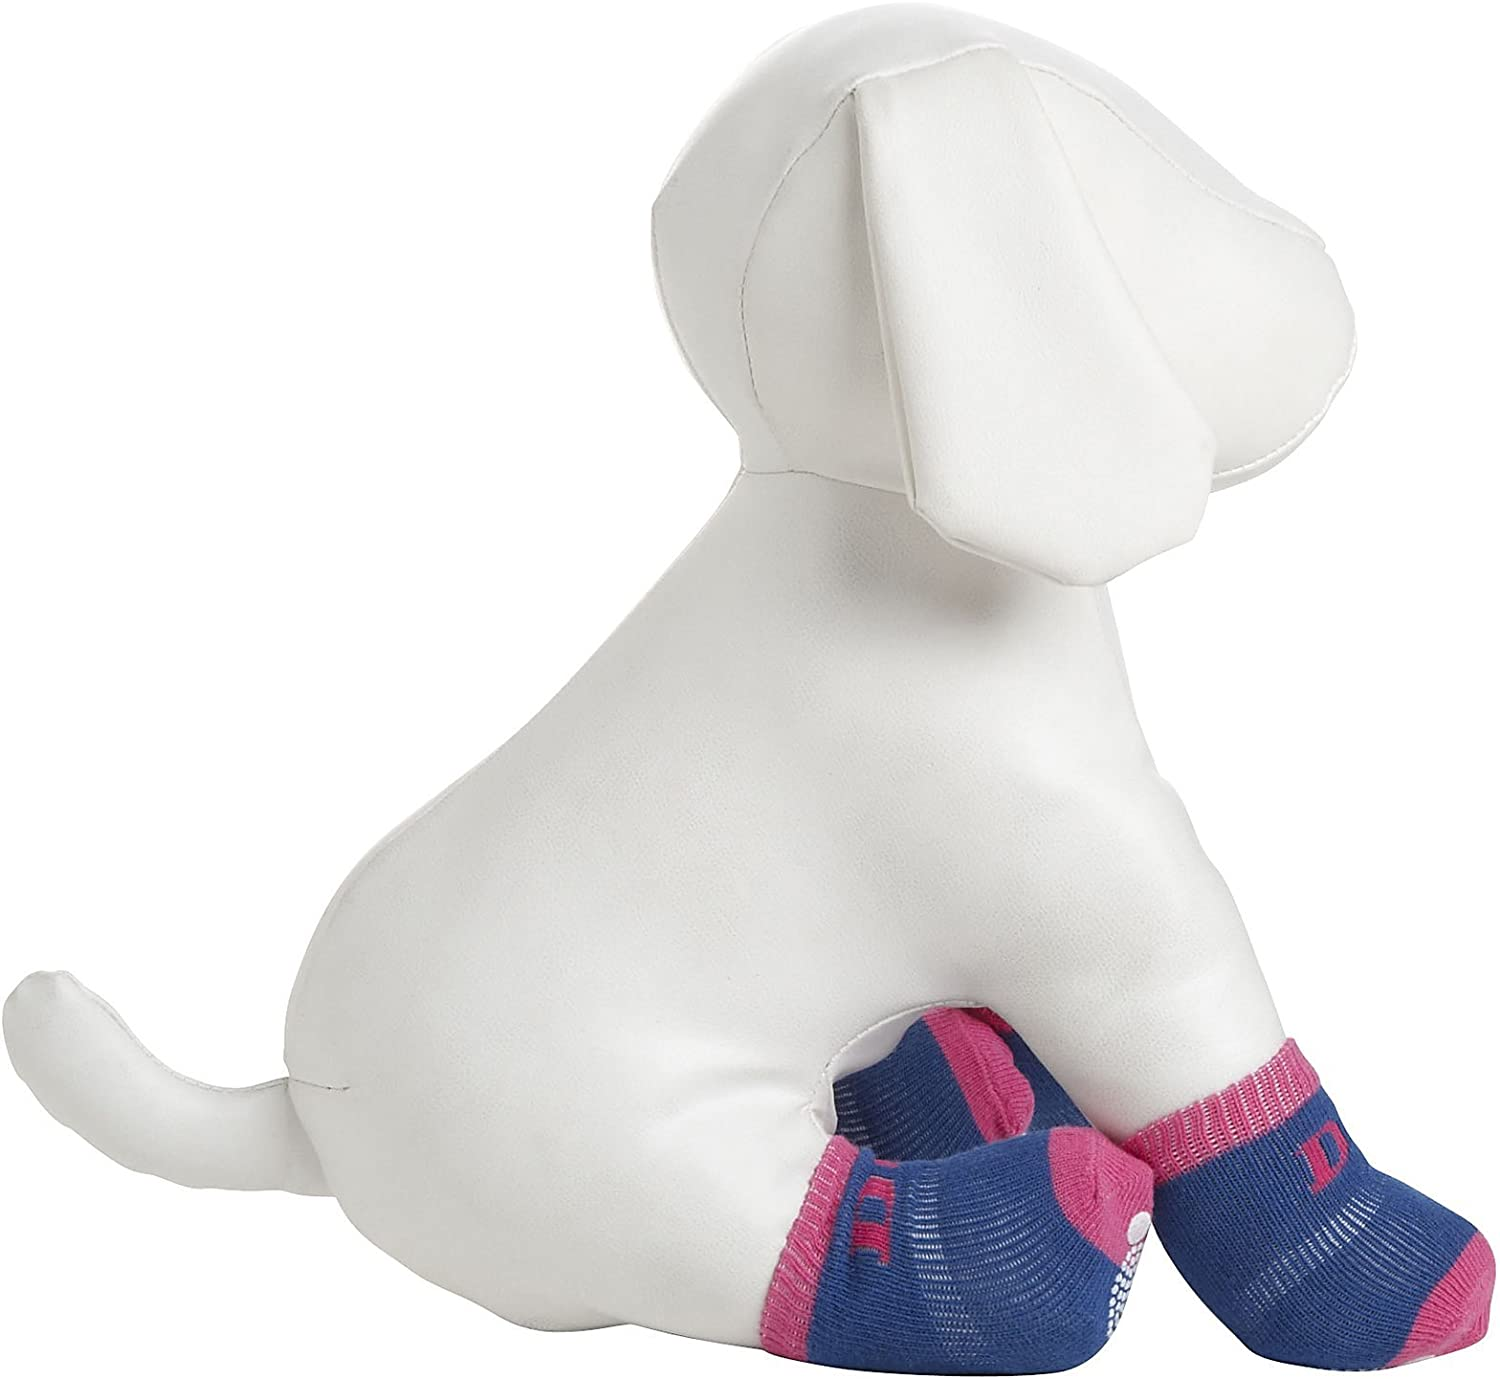 PetLife DPF09912 4Pack AntiSkid Soft Cotton Dog Socks with Rubber Sole Grip, XSmall Small, Pink bluee